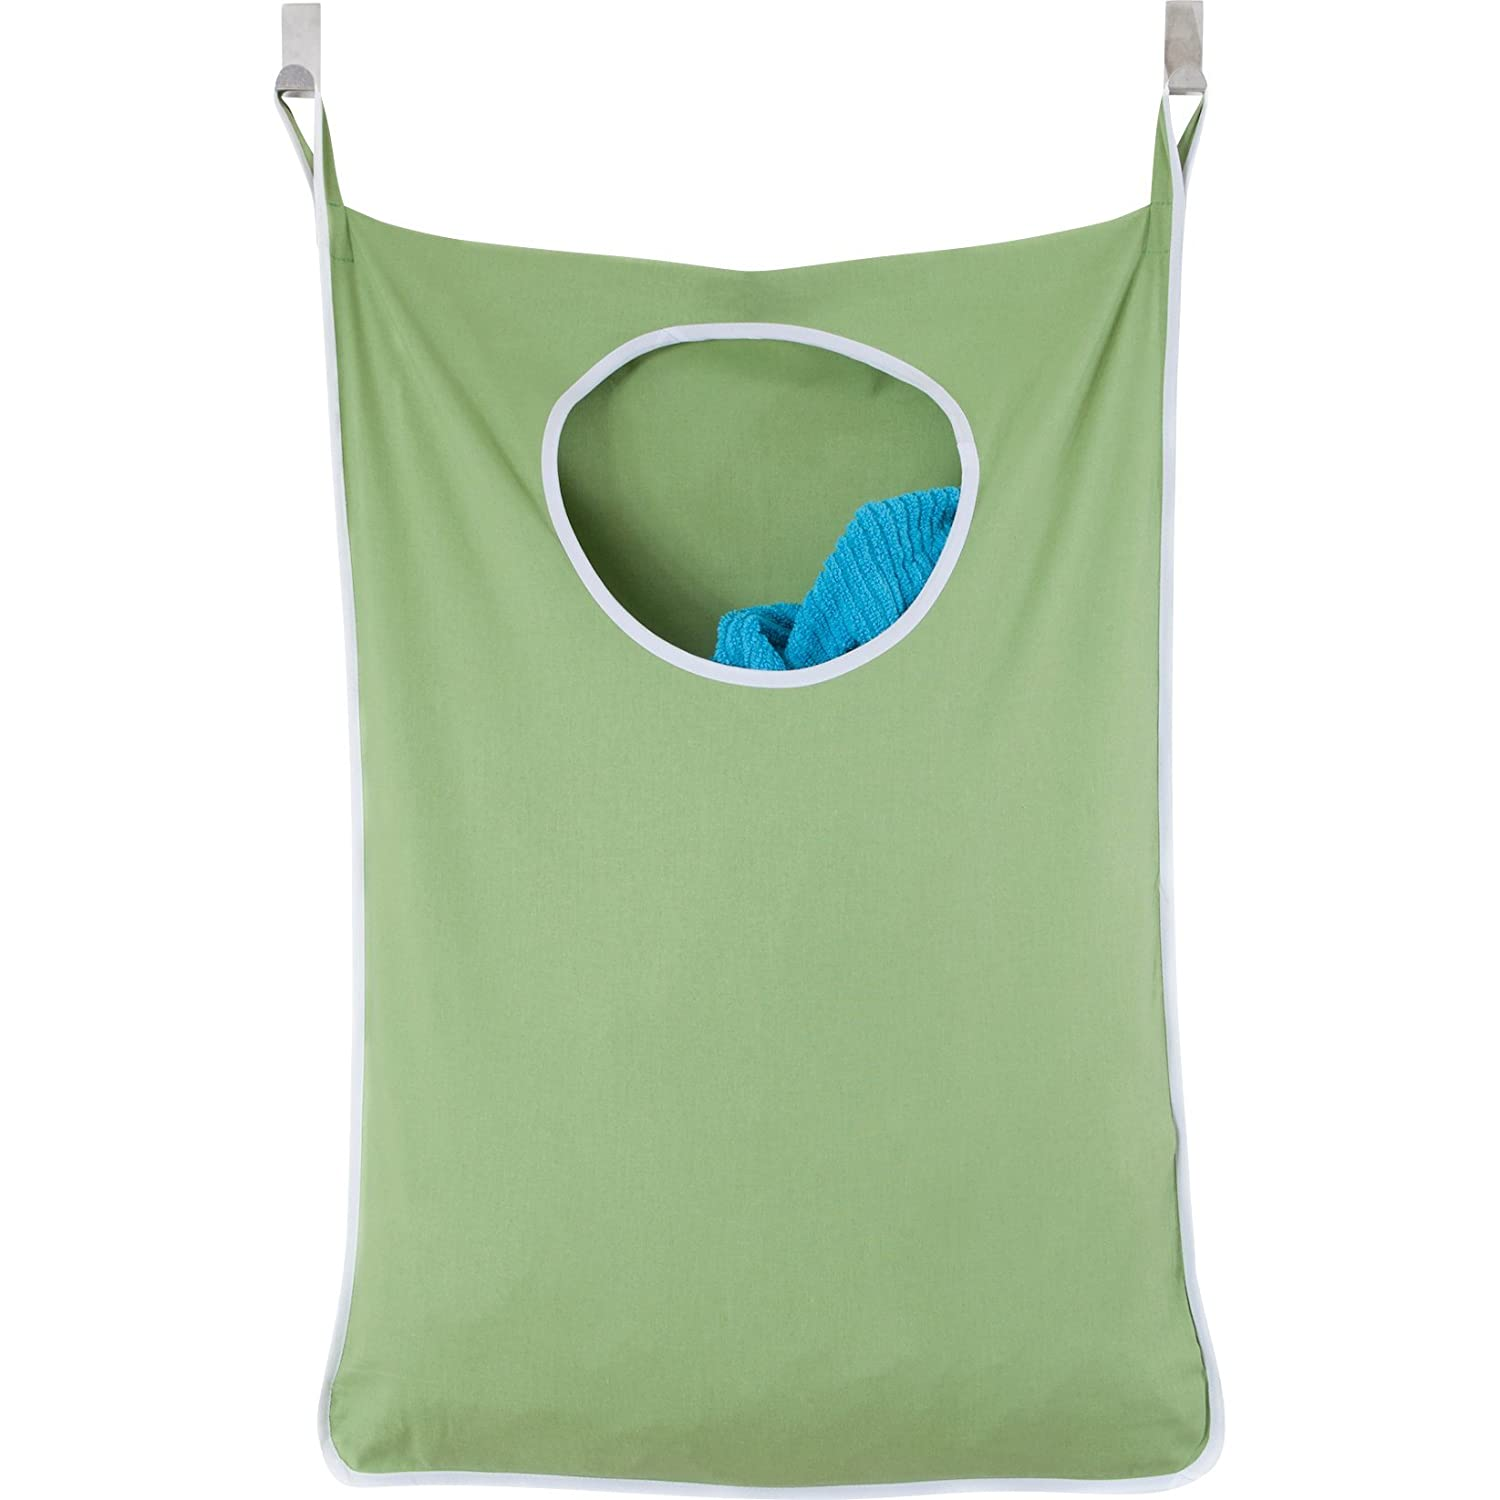 Laundry Nook Door Hanging Laundry Hamper With Stainless Steel Hooks (Green) by Urban Mom